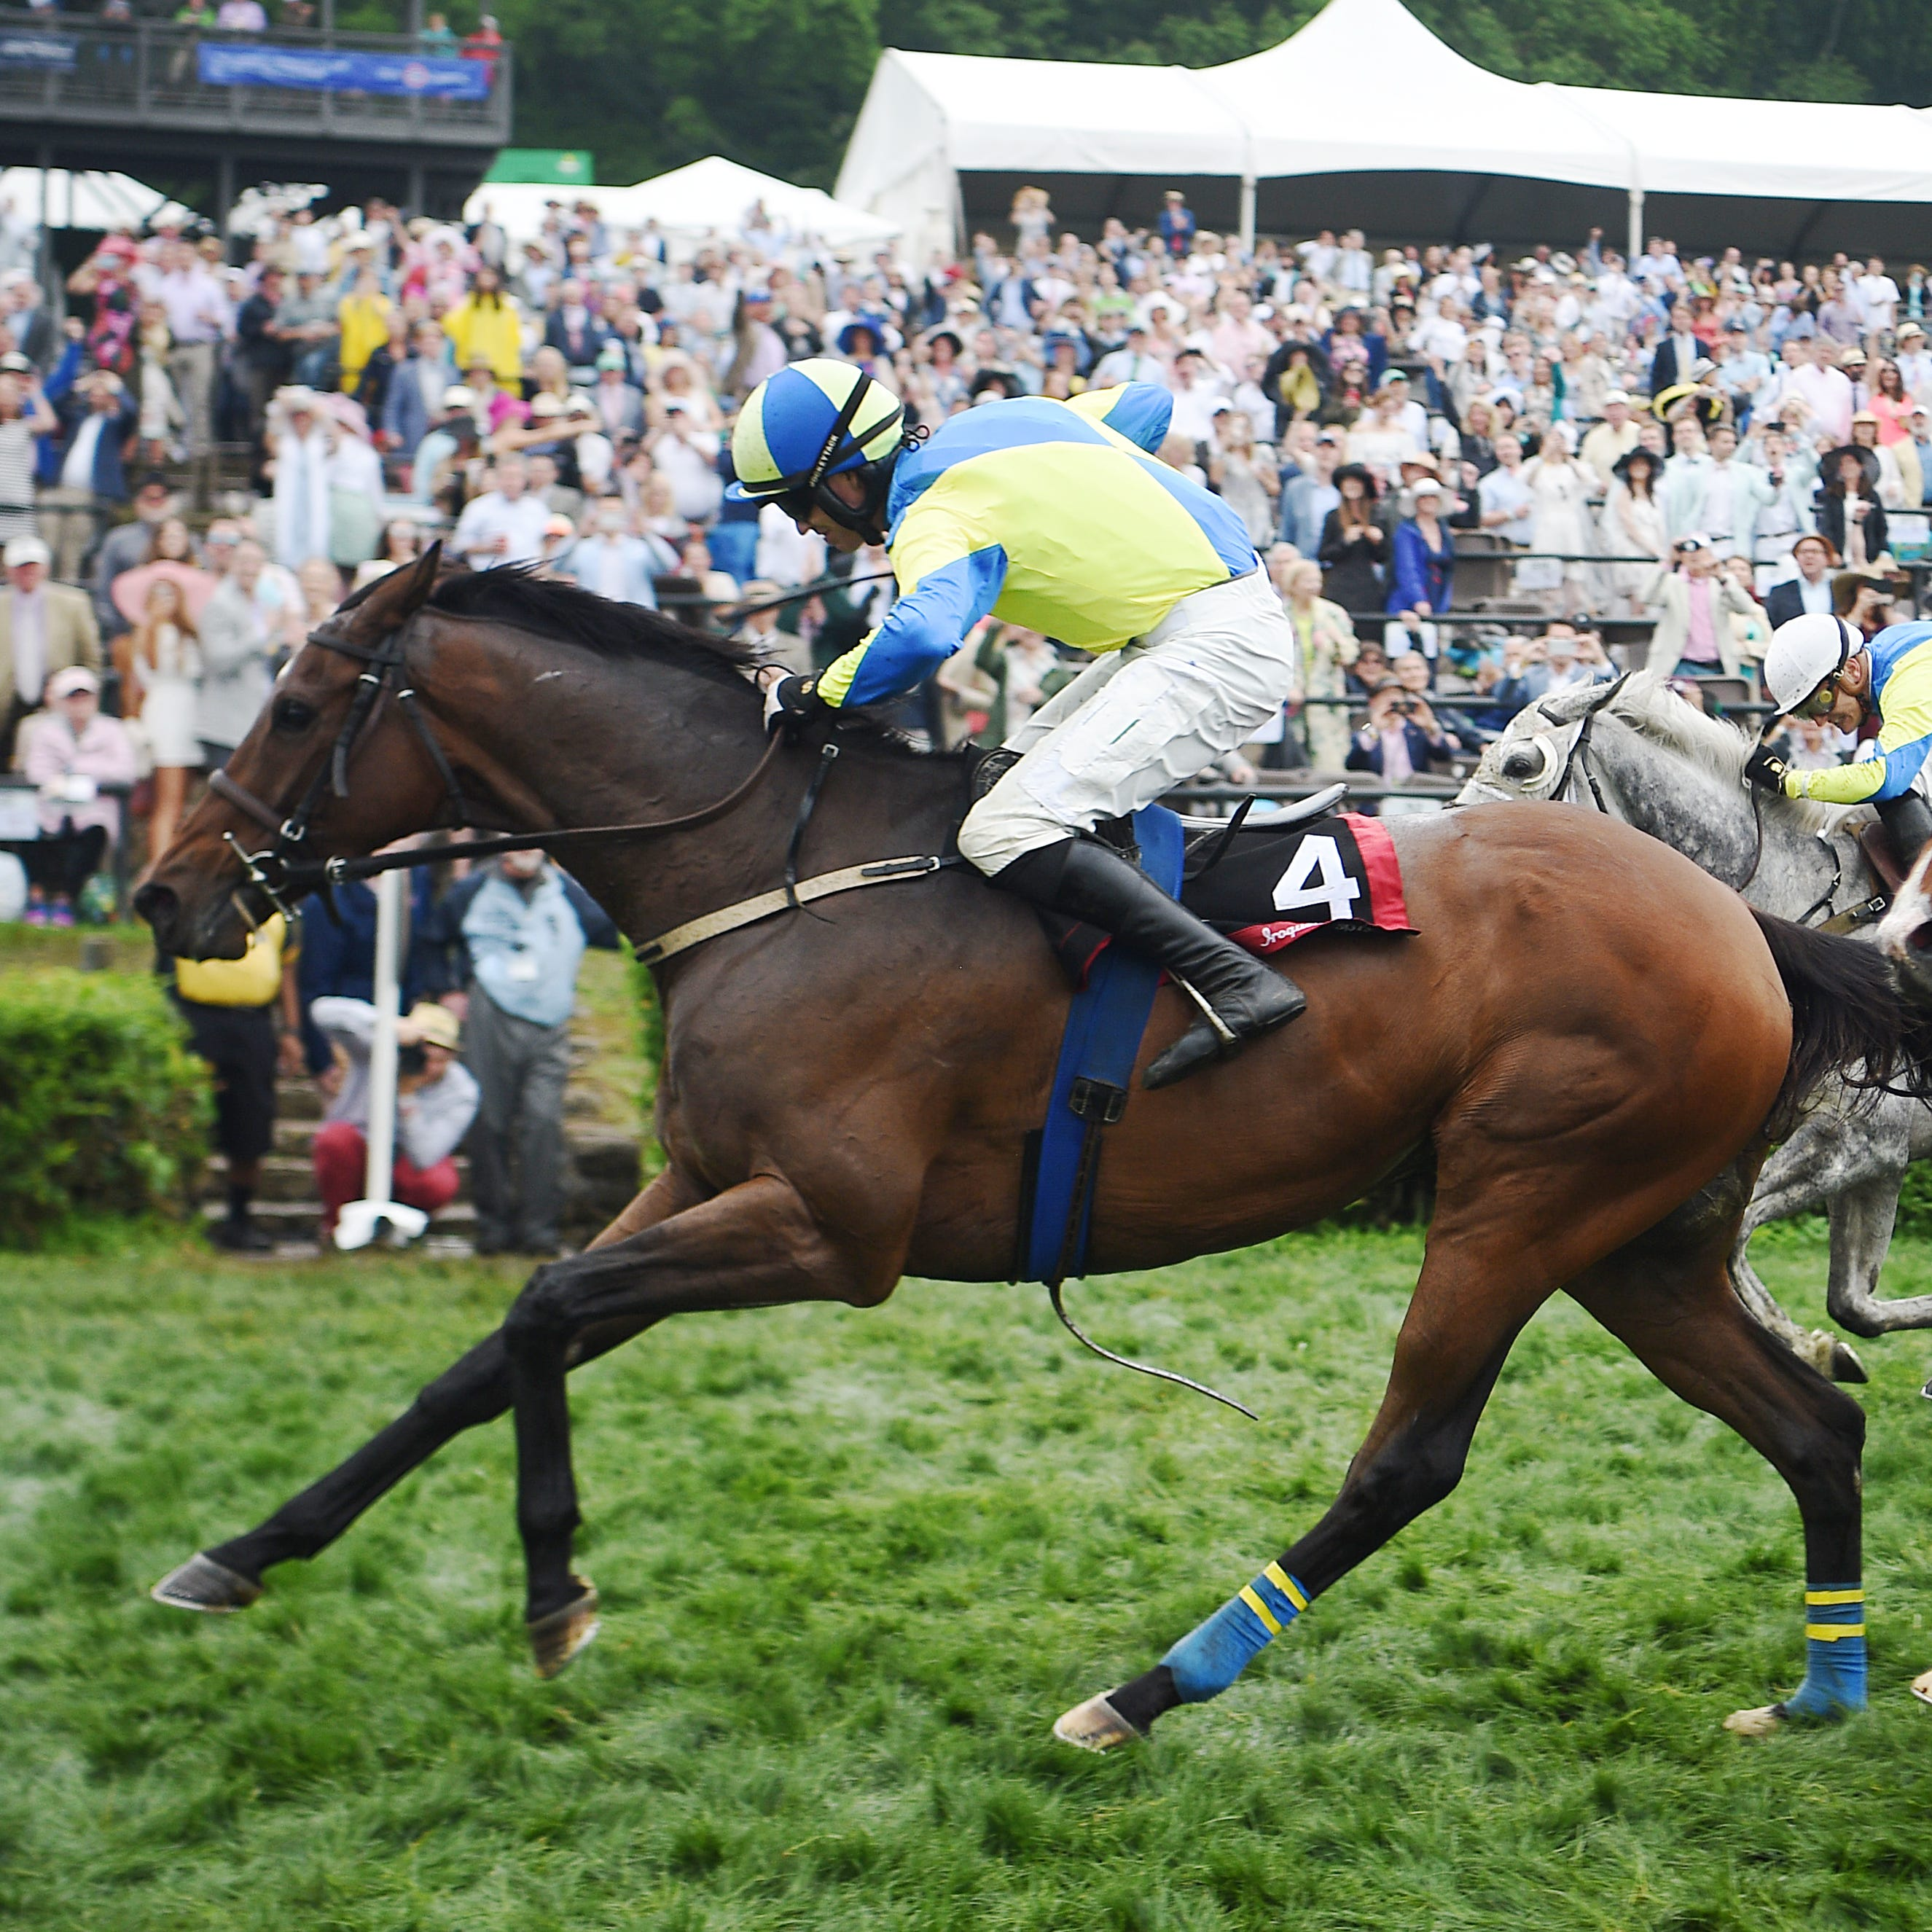 Scorpiancer rallies to win Iroquois Steeplechase for second time in three years